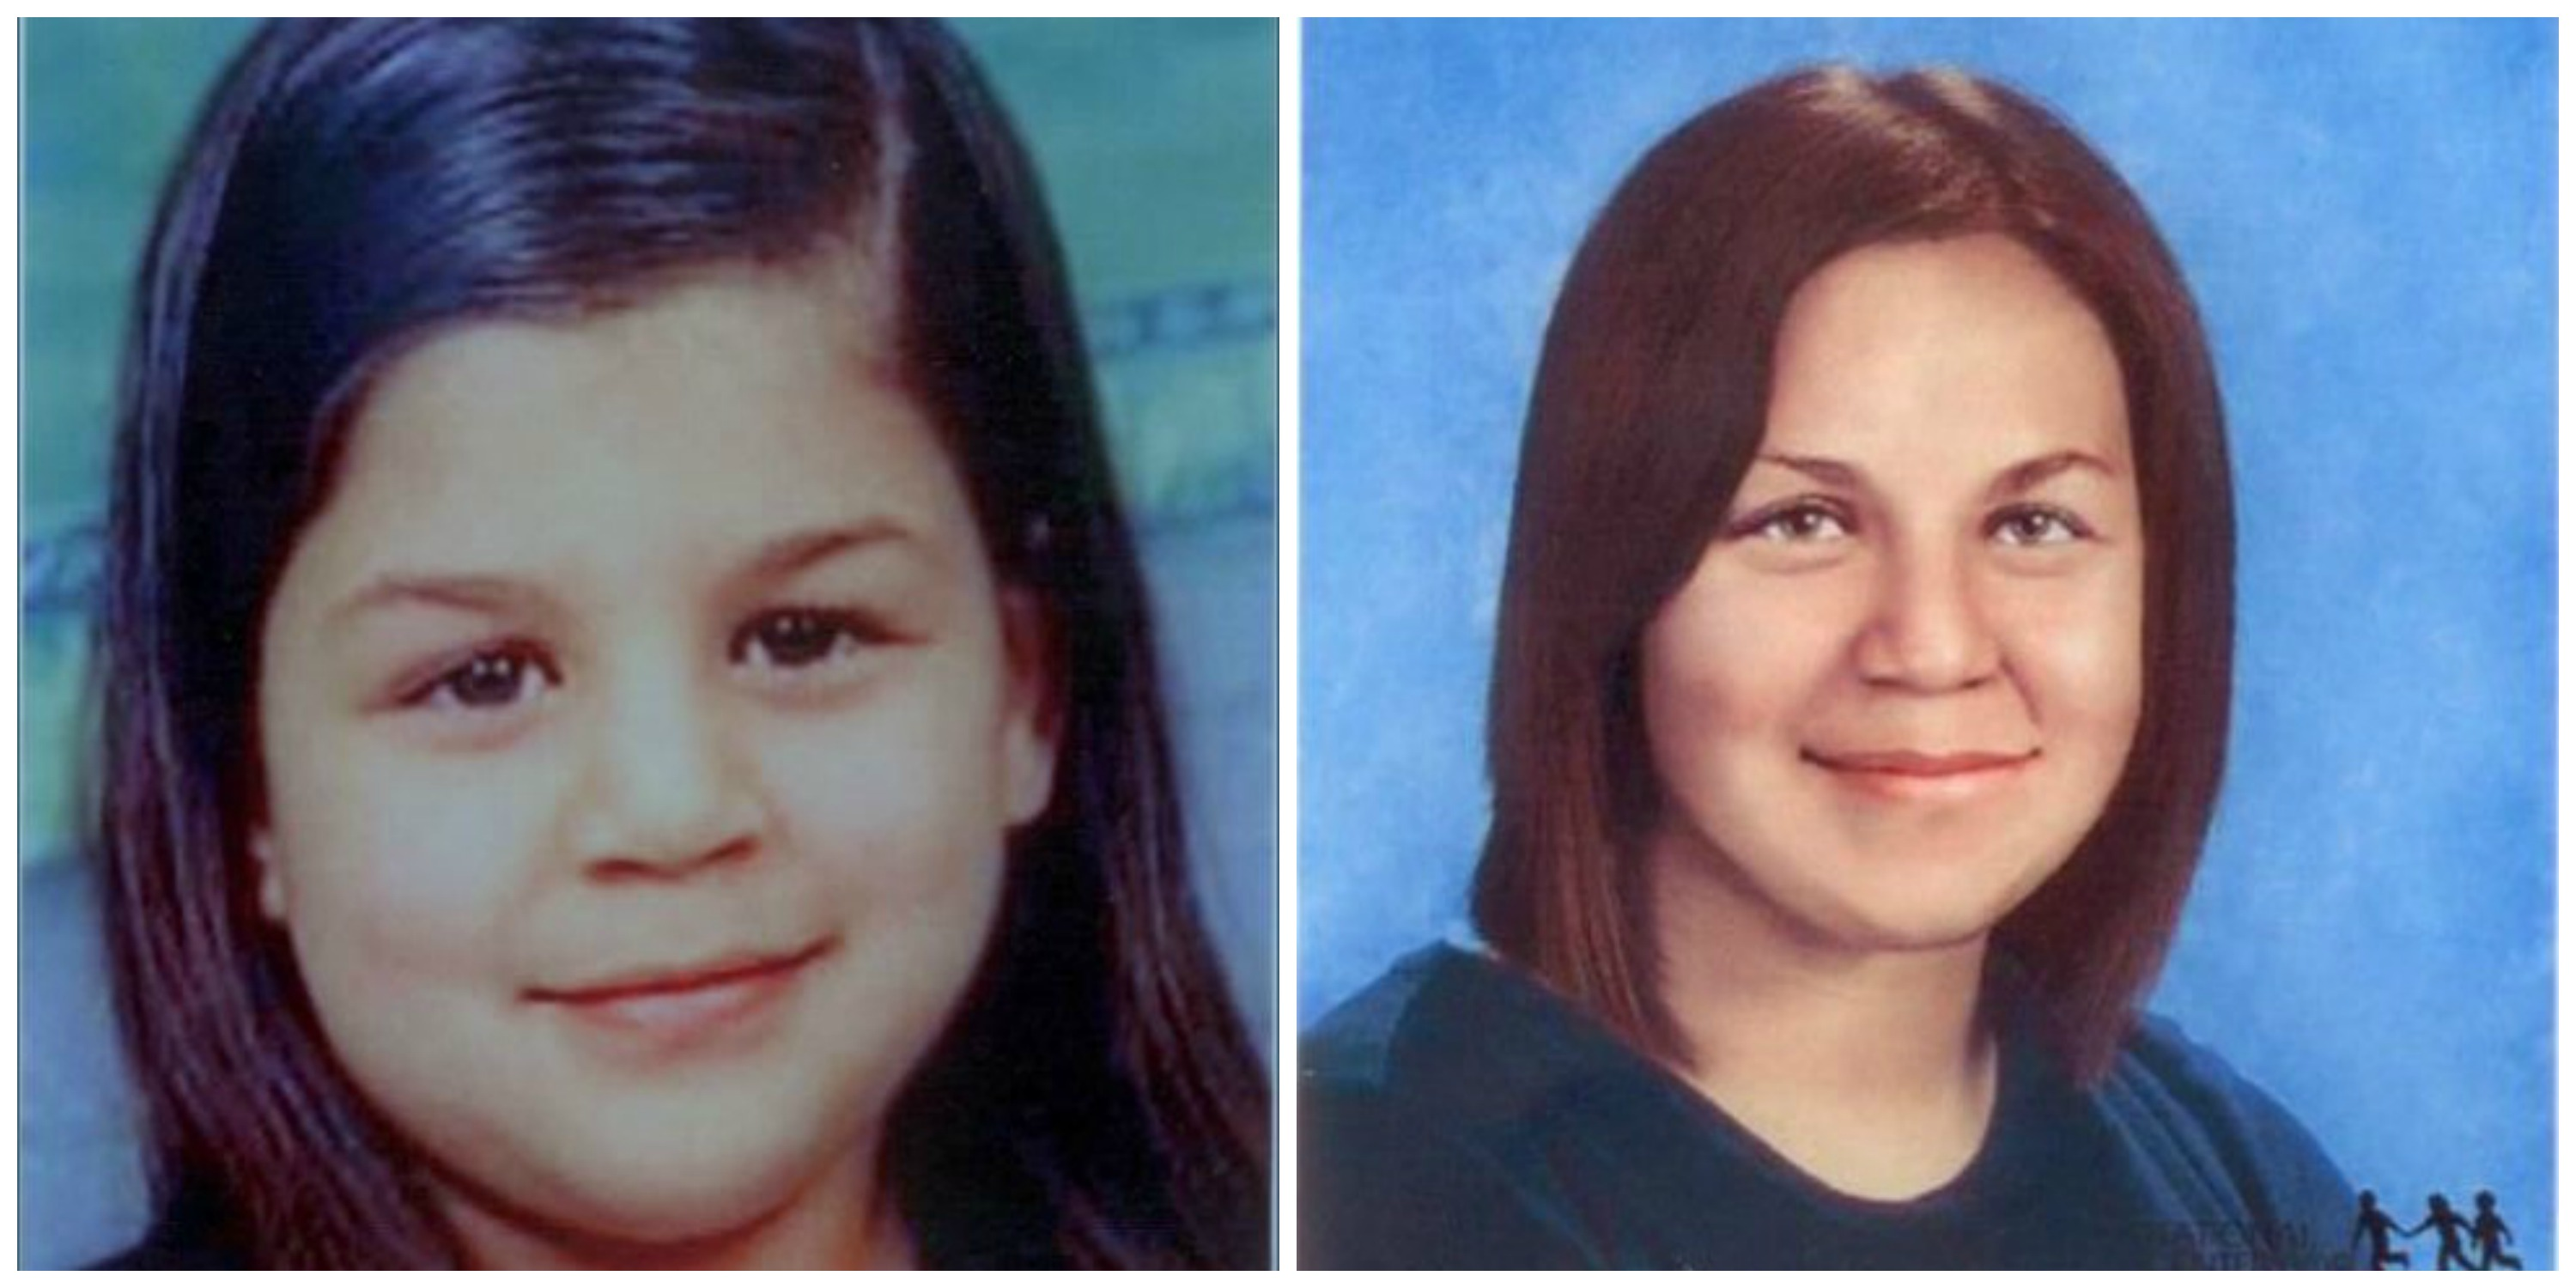 Bianca Lebron was 10 years old when she went missing, as shown in the photo at the left. The photo at the right shows an age progression to 23 years old.